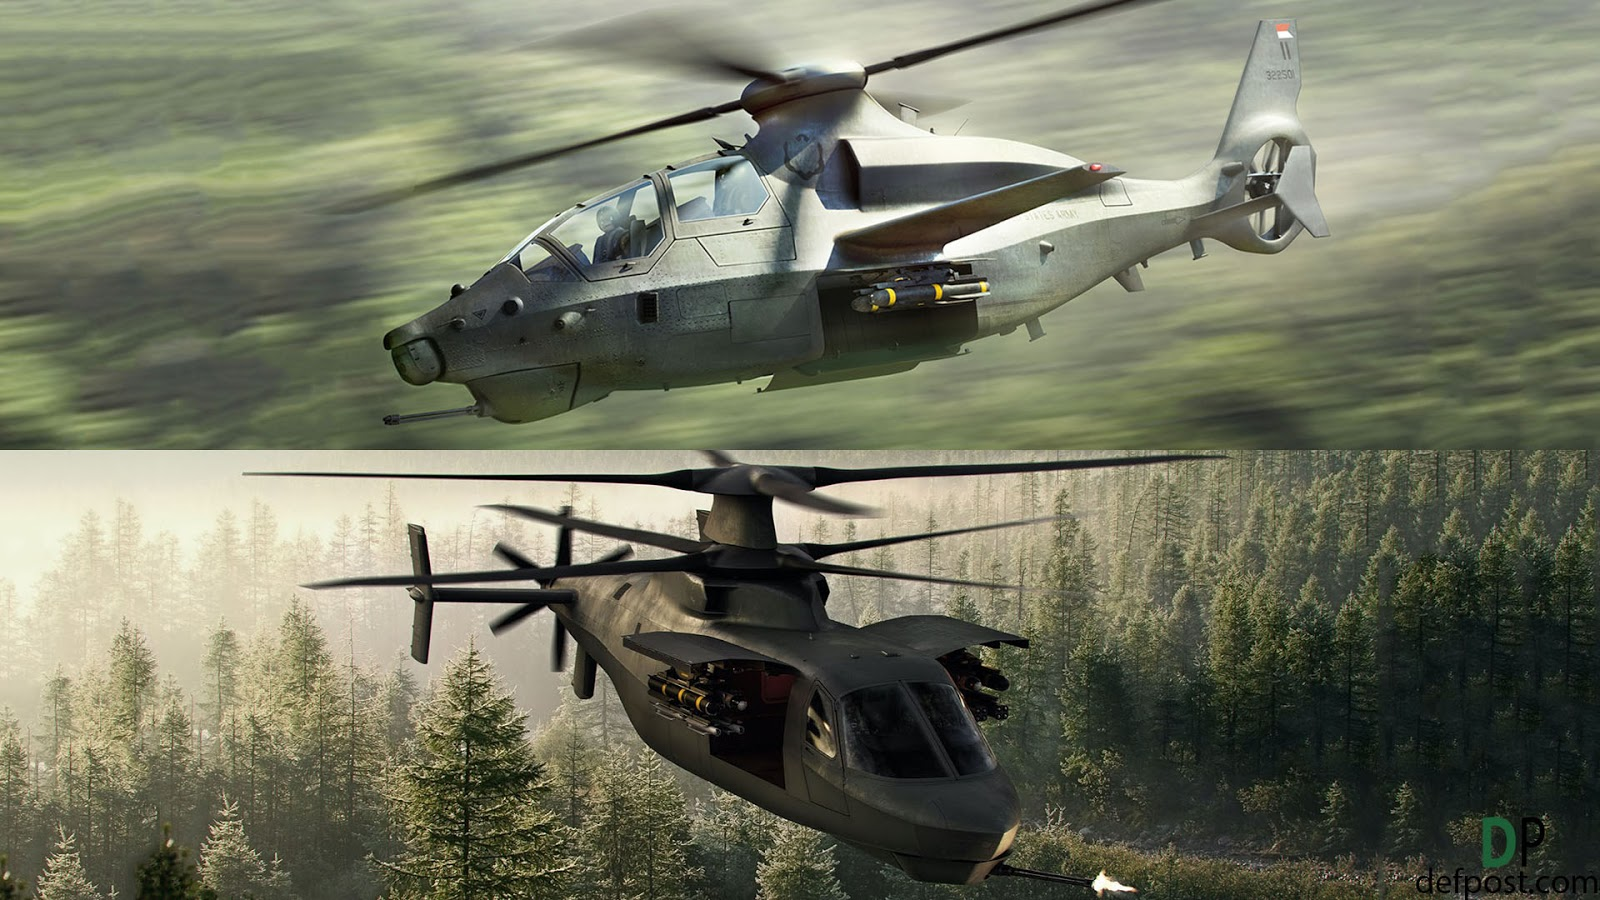 Army Wants 20mm Cannon, Supervised Autonomy For New Scout Helicopter